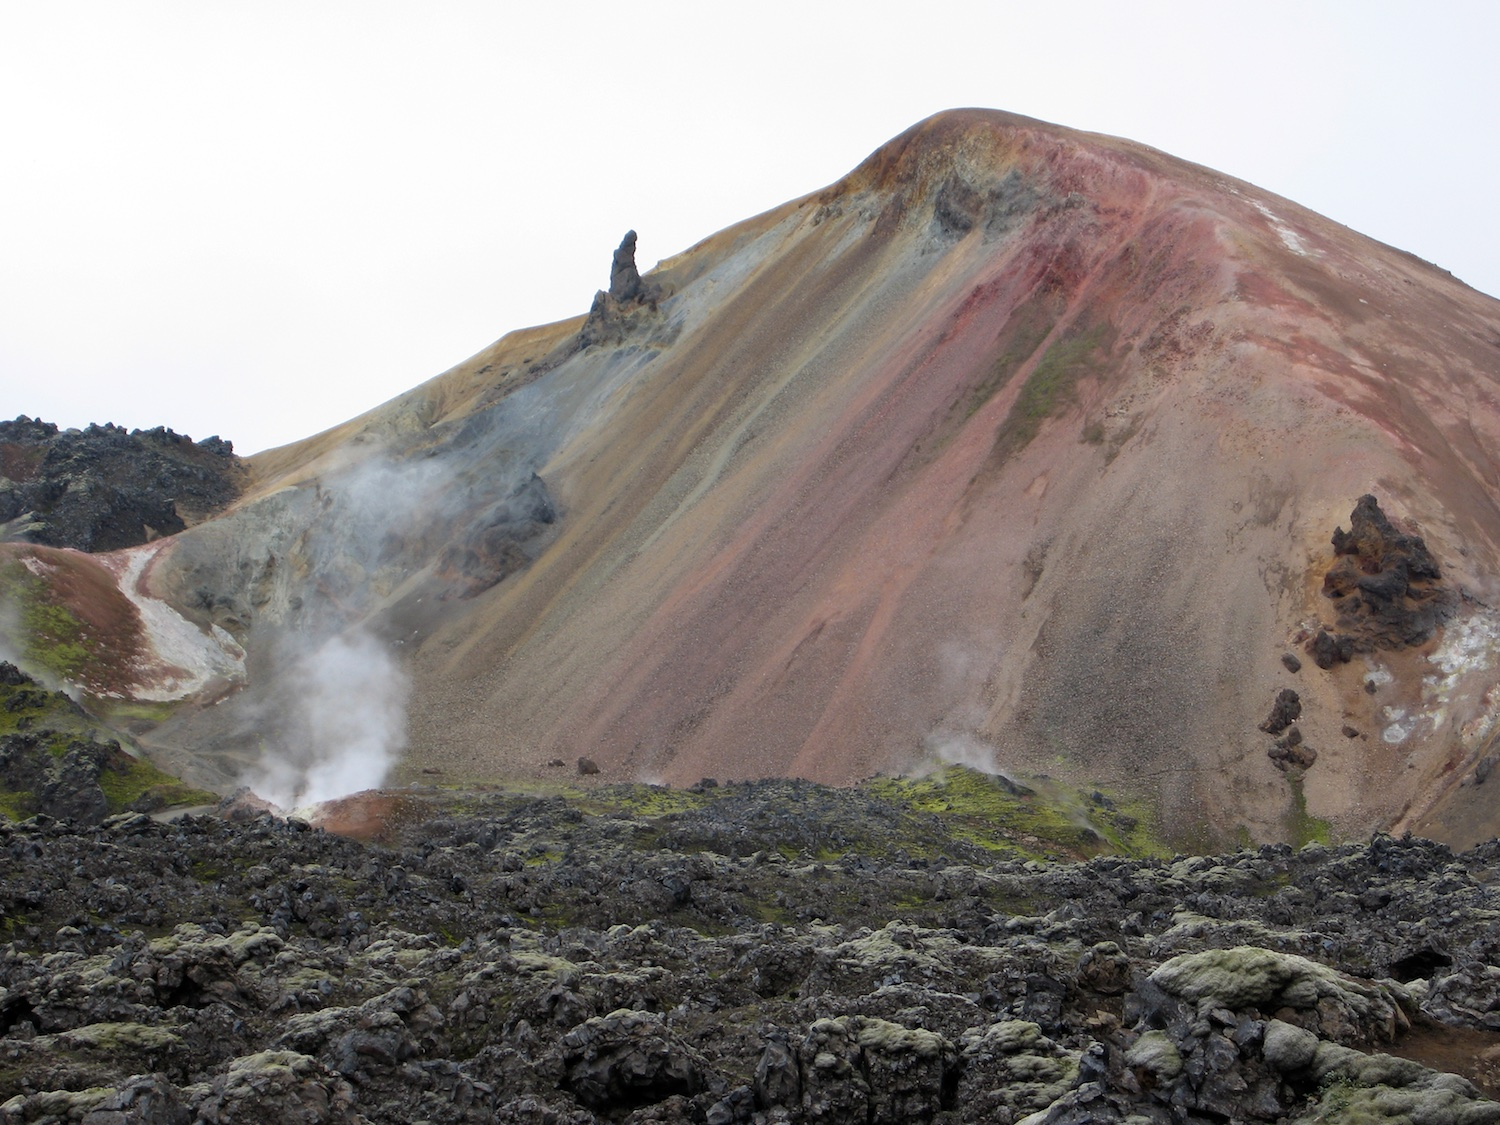 The spectacular colourful hills and lava flows of Landmannalaugar